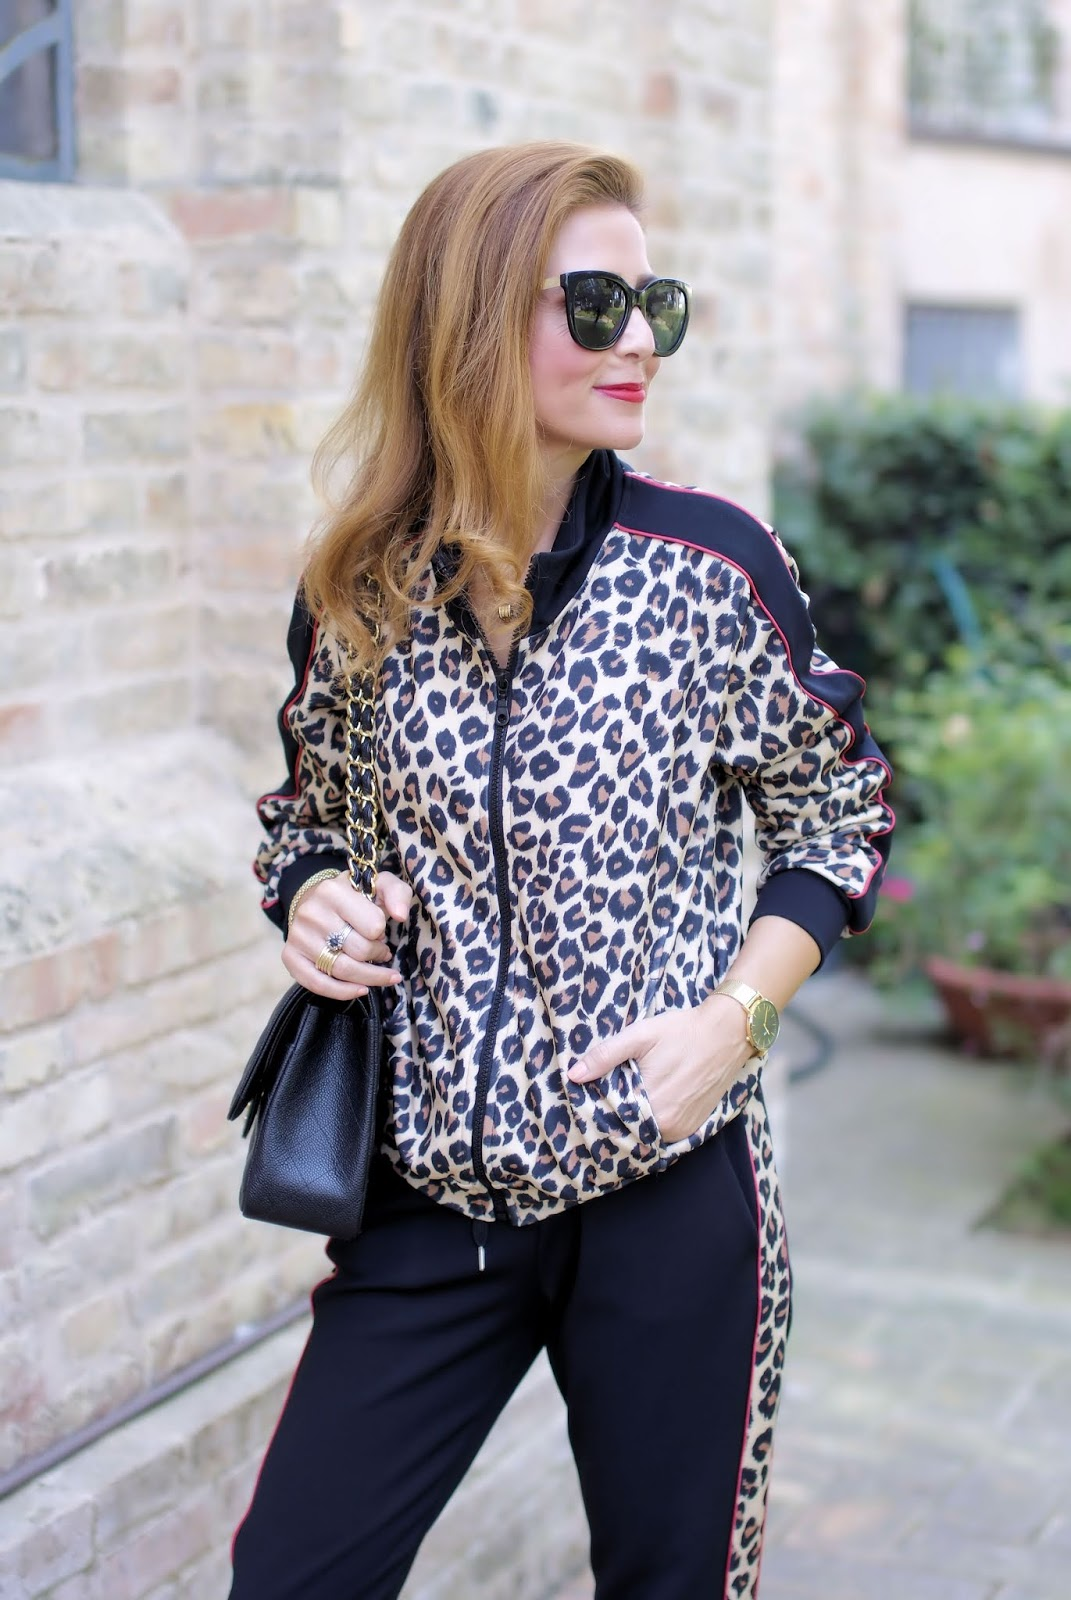 The animal print trend: leopard print tracksuit on Fashion and Cookies fashion blog, fashion blogger style